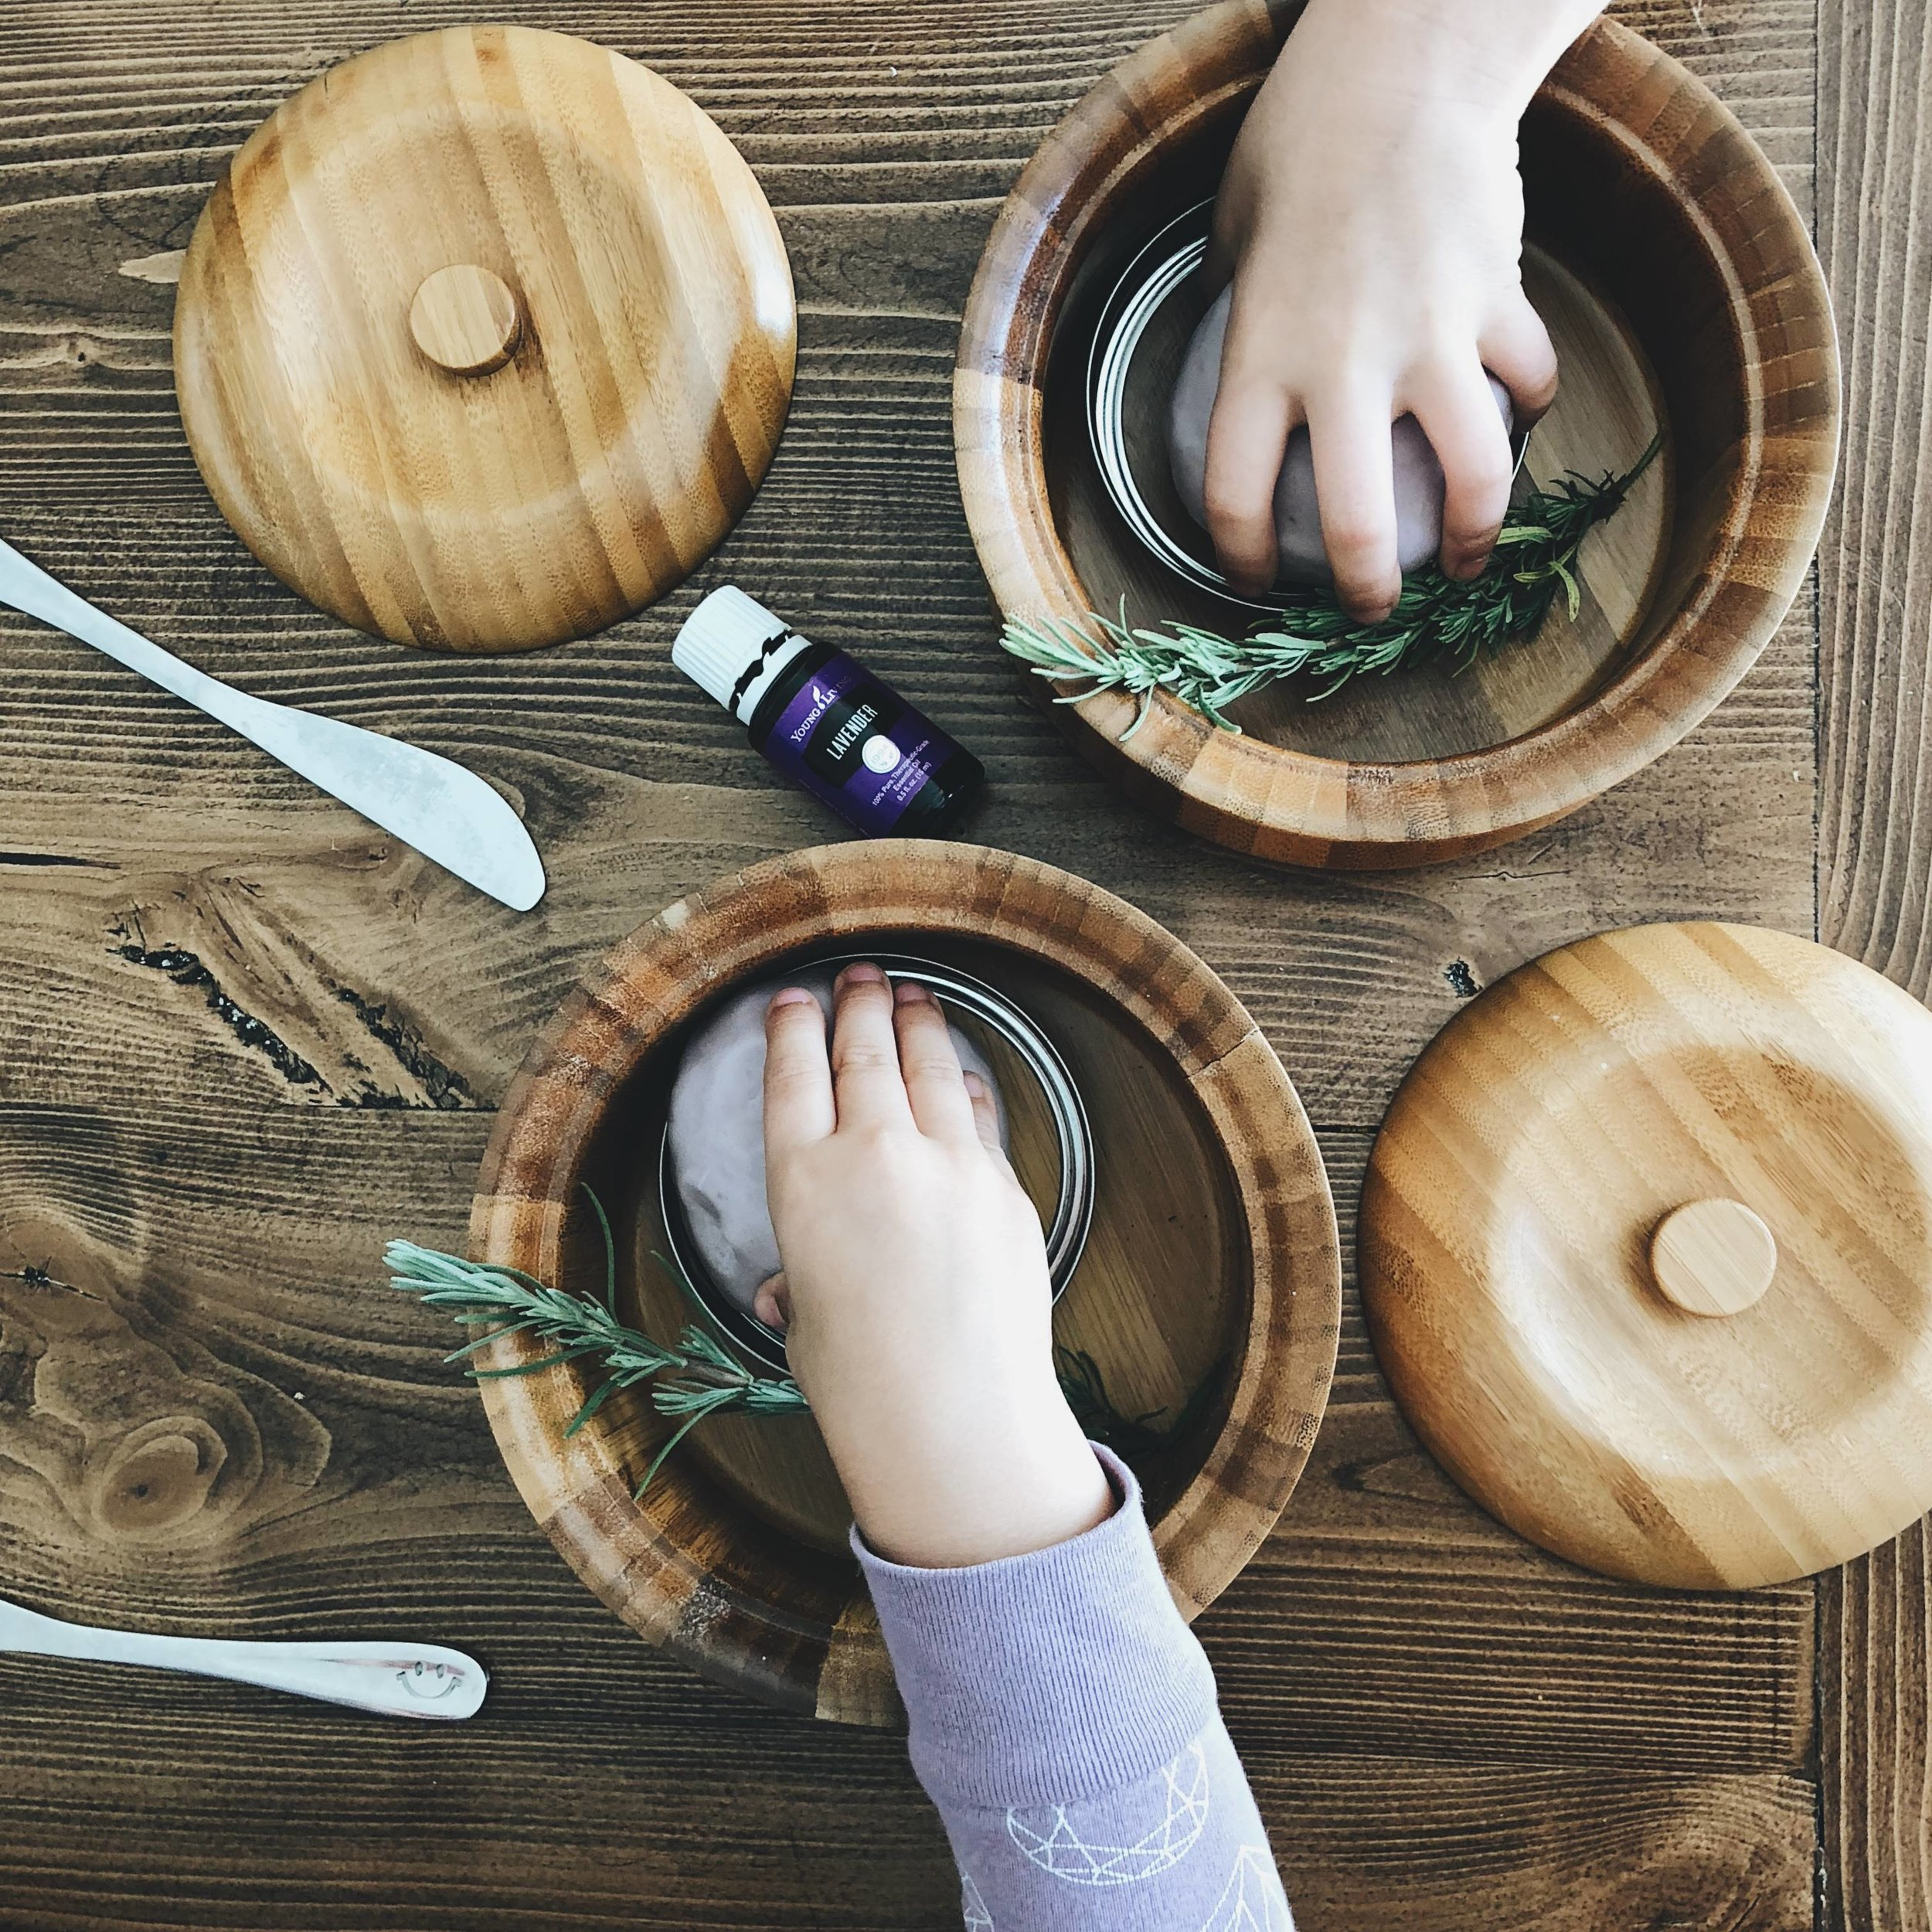 Soft & Soothing Lavender Playdough - Ingredients:3/4 cup white flour1/4 cup corn starch1/4 cup salt2 teaspoons cream of tartar1 tablespoon vegetable oil3/4 cup water5-10 drops lavender essential oiljust a hint of purple food coloringsprigs of lavender or dried lavender buds to use in open ended play with the dough